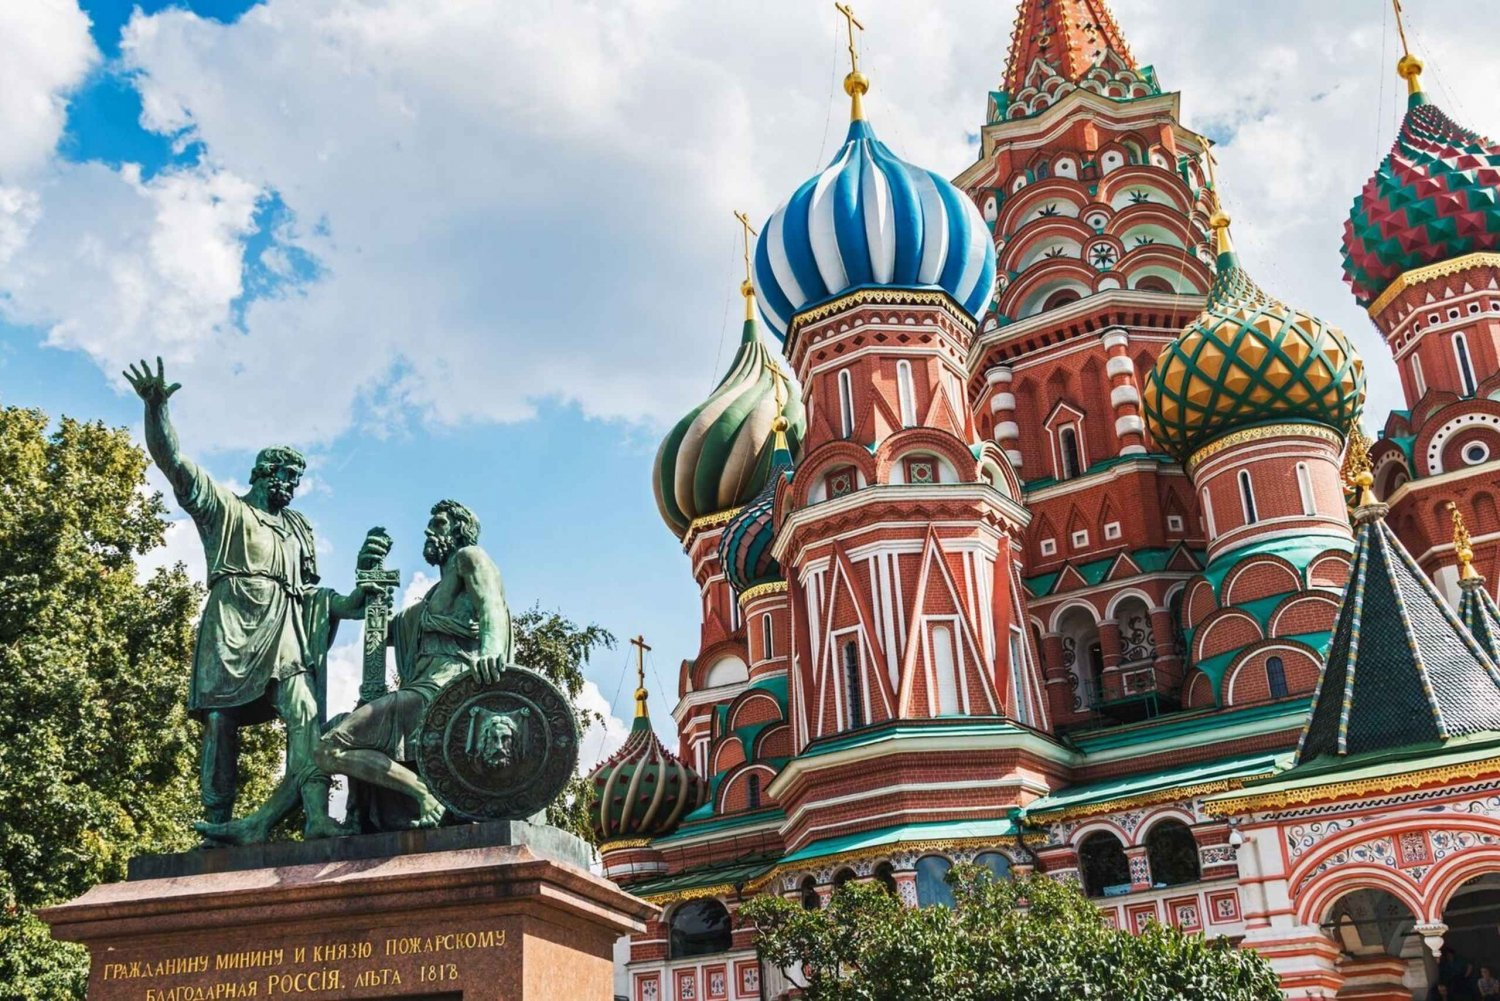 An Iconic Church Tour of St. Basil's Cathedral